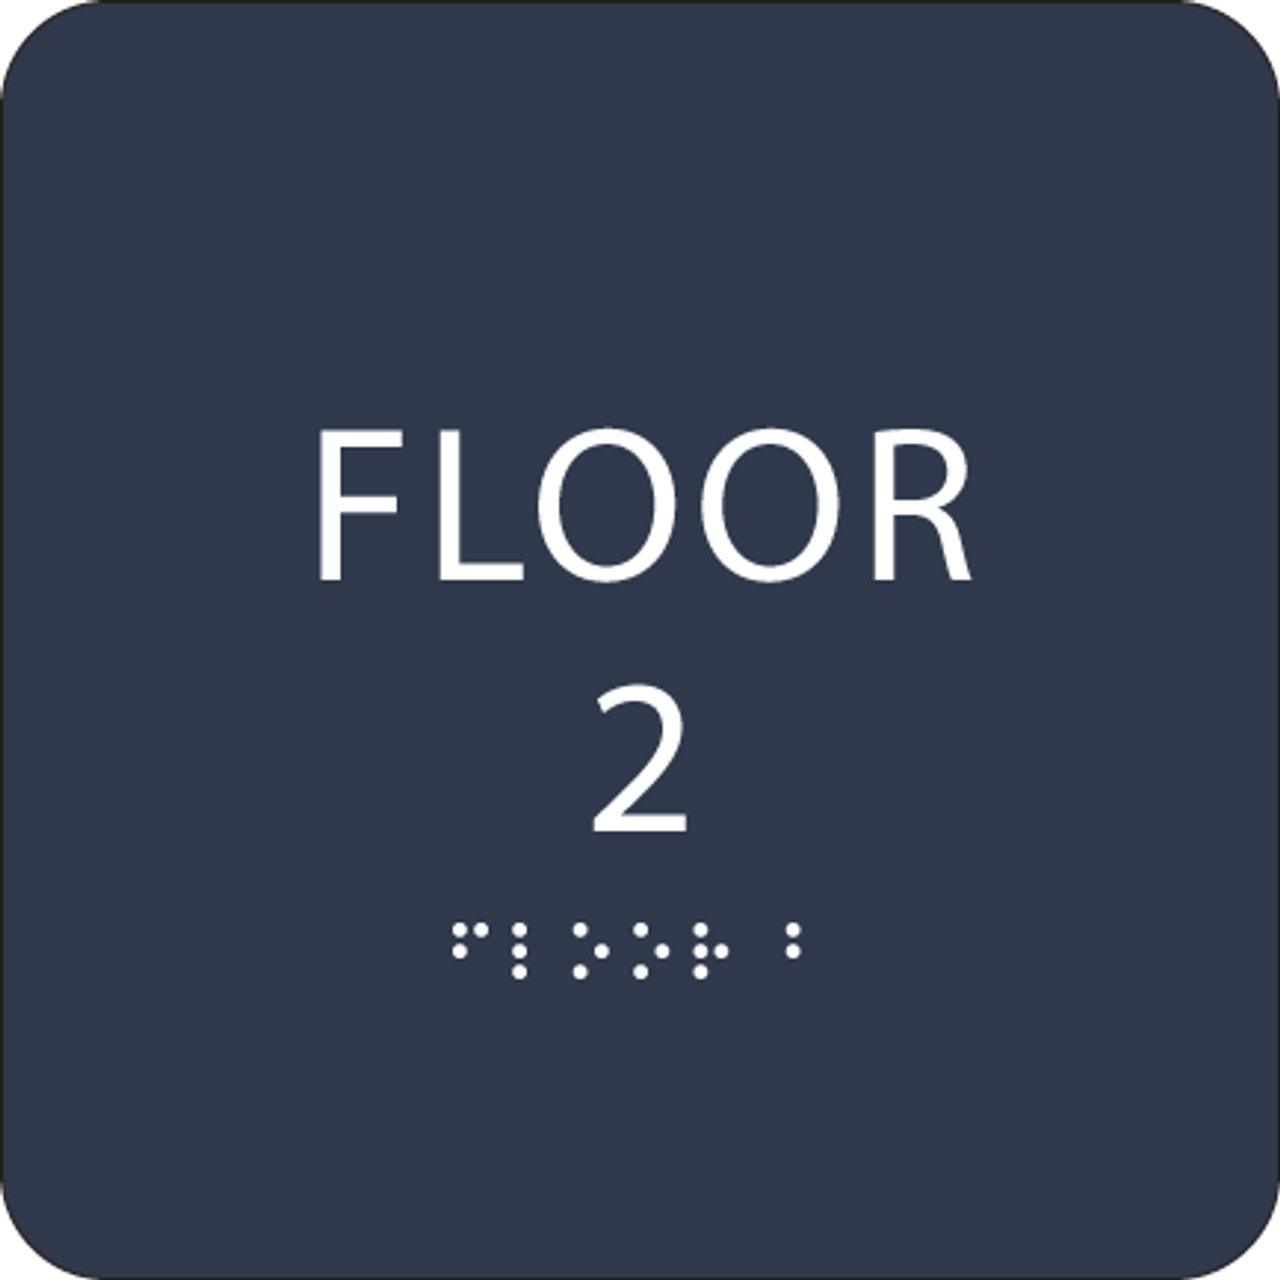 Navy Floor 2 Identification Sign